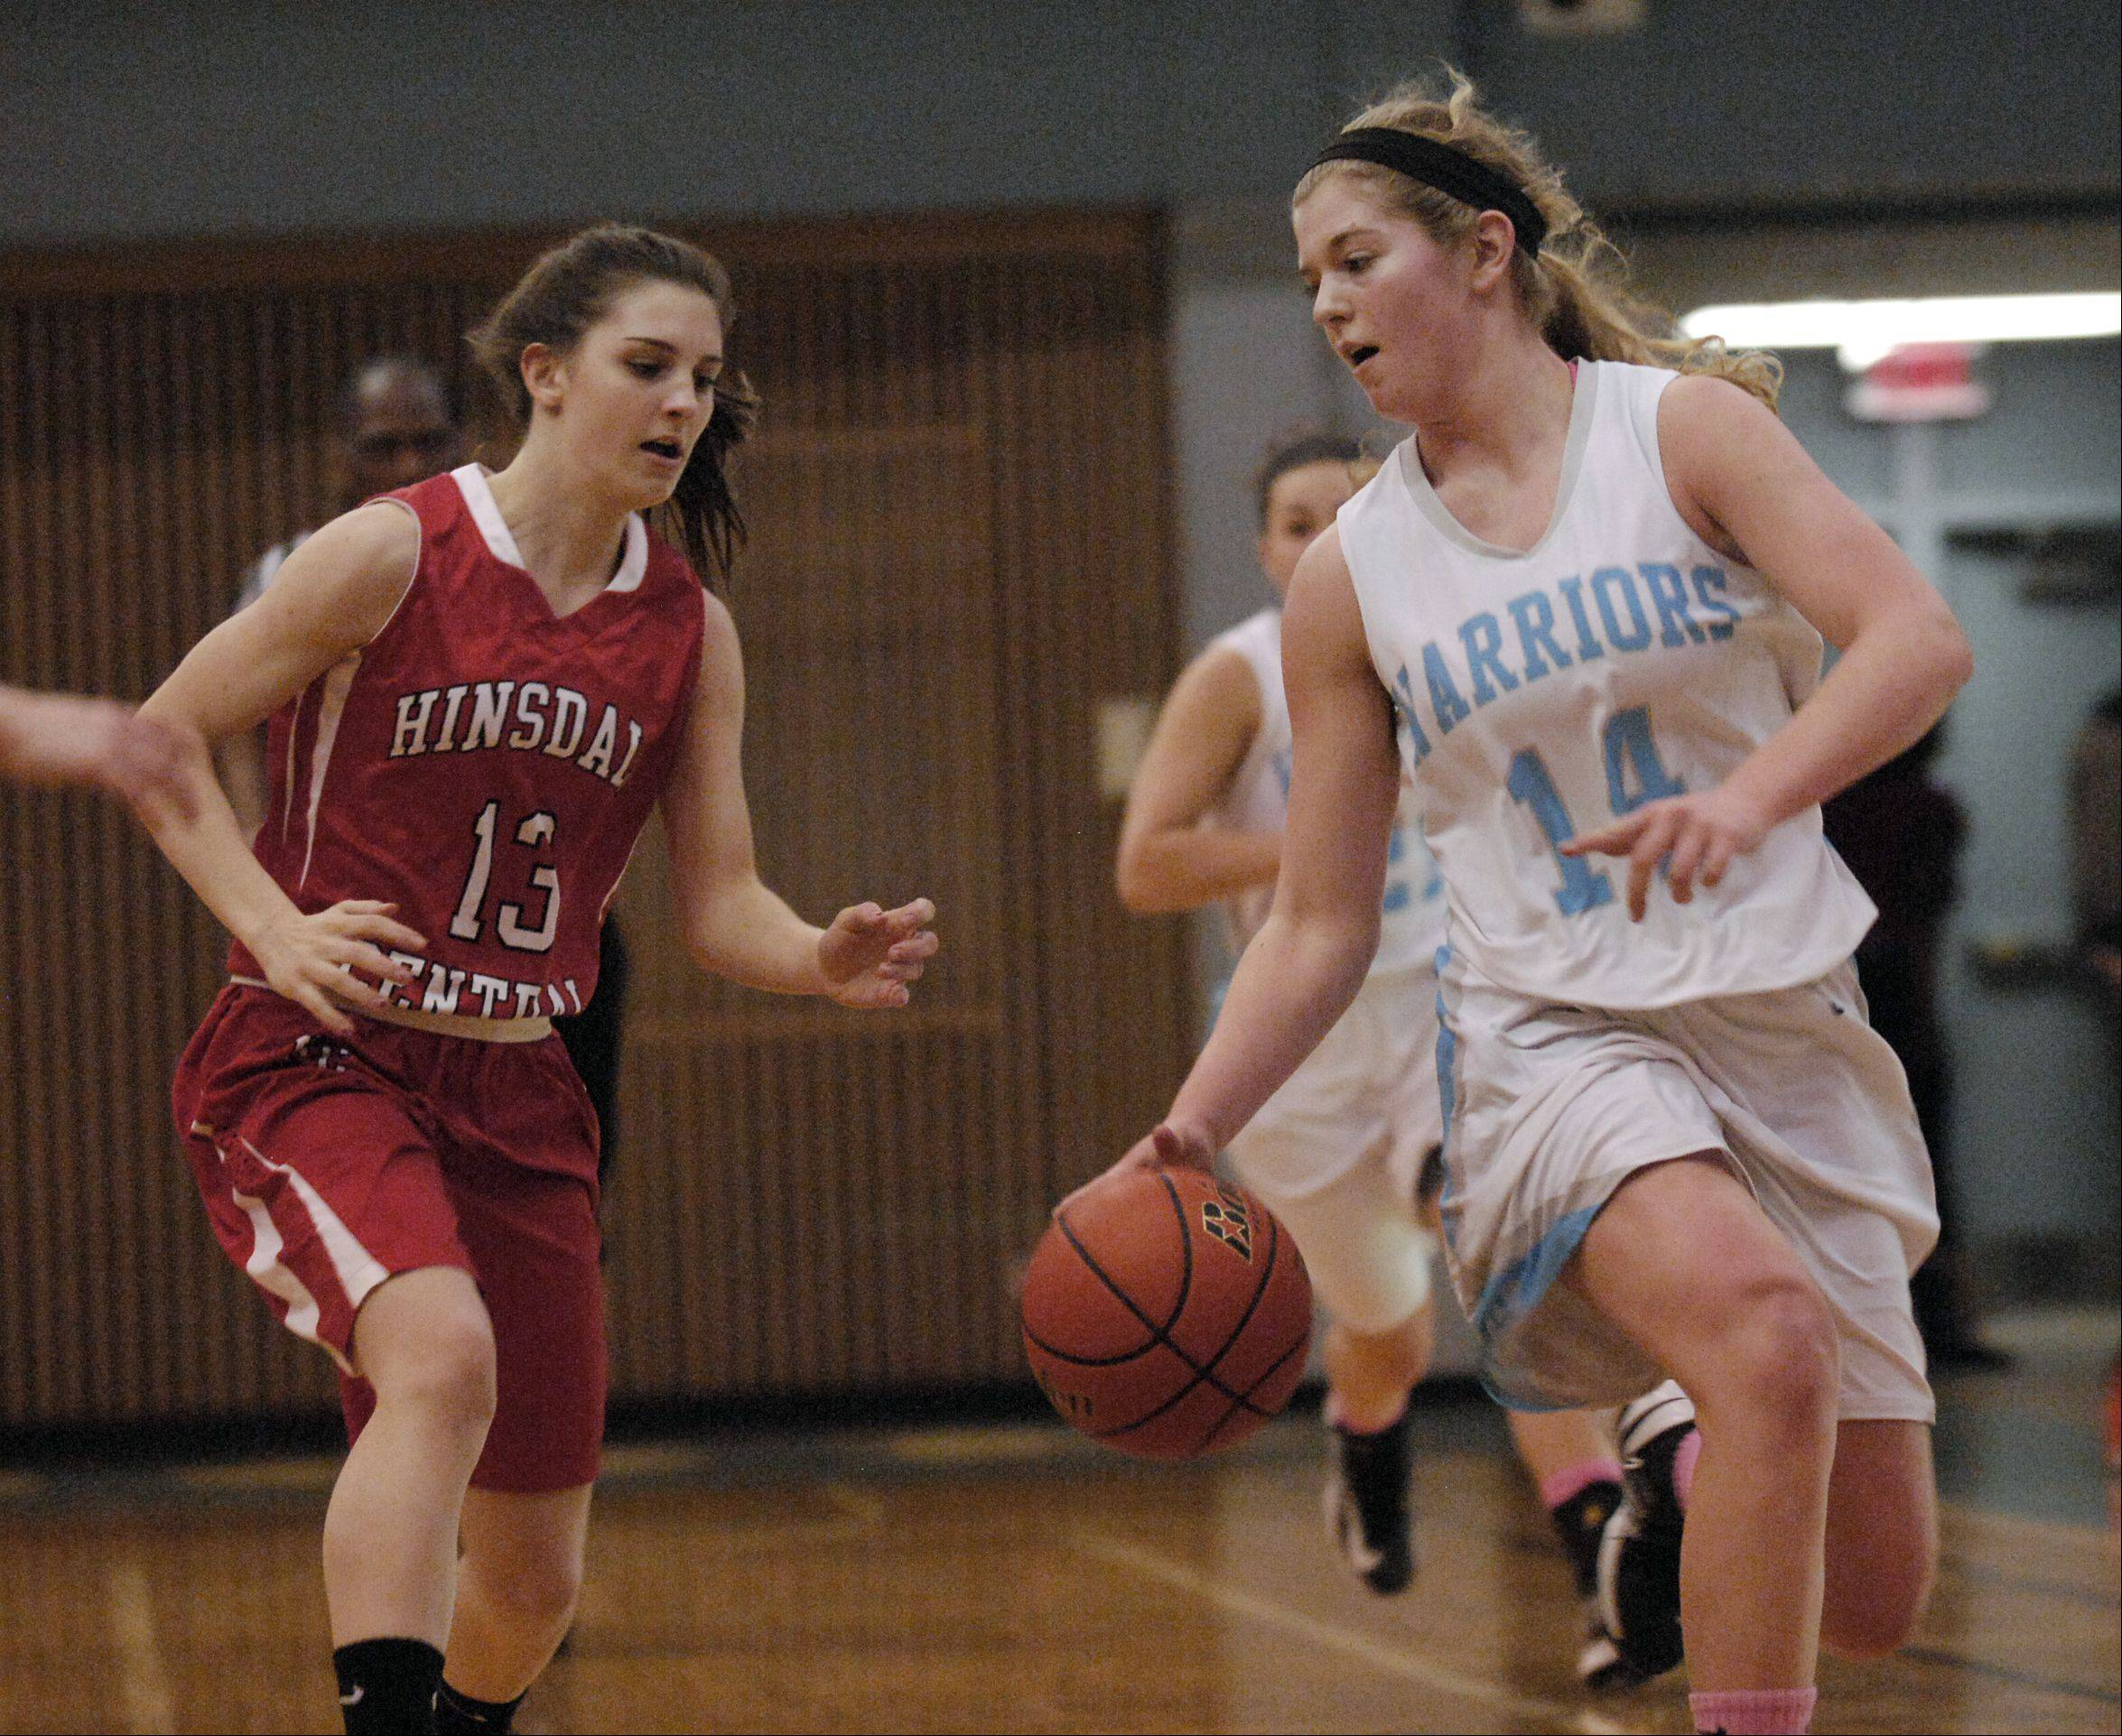 Willowbrook High School hosted Hinsdale Central Wednesday night for girls basketball.